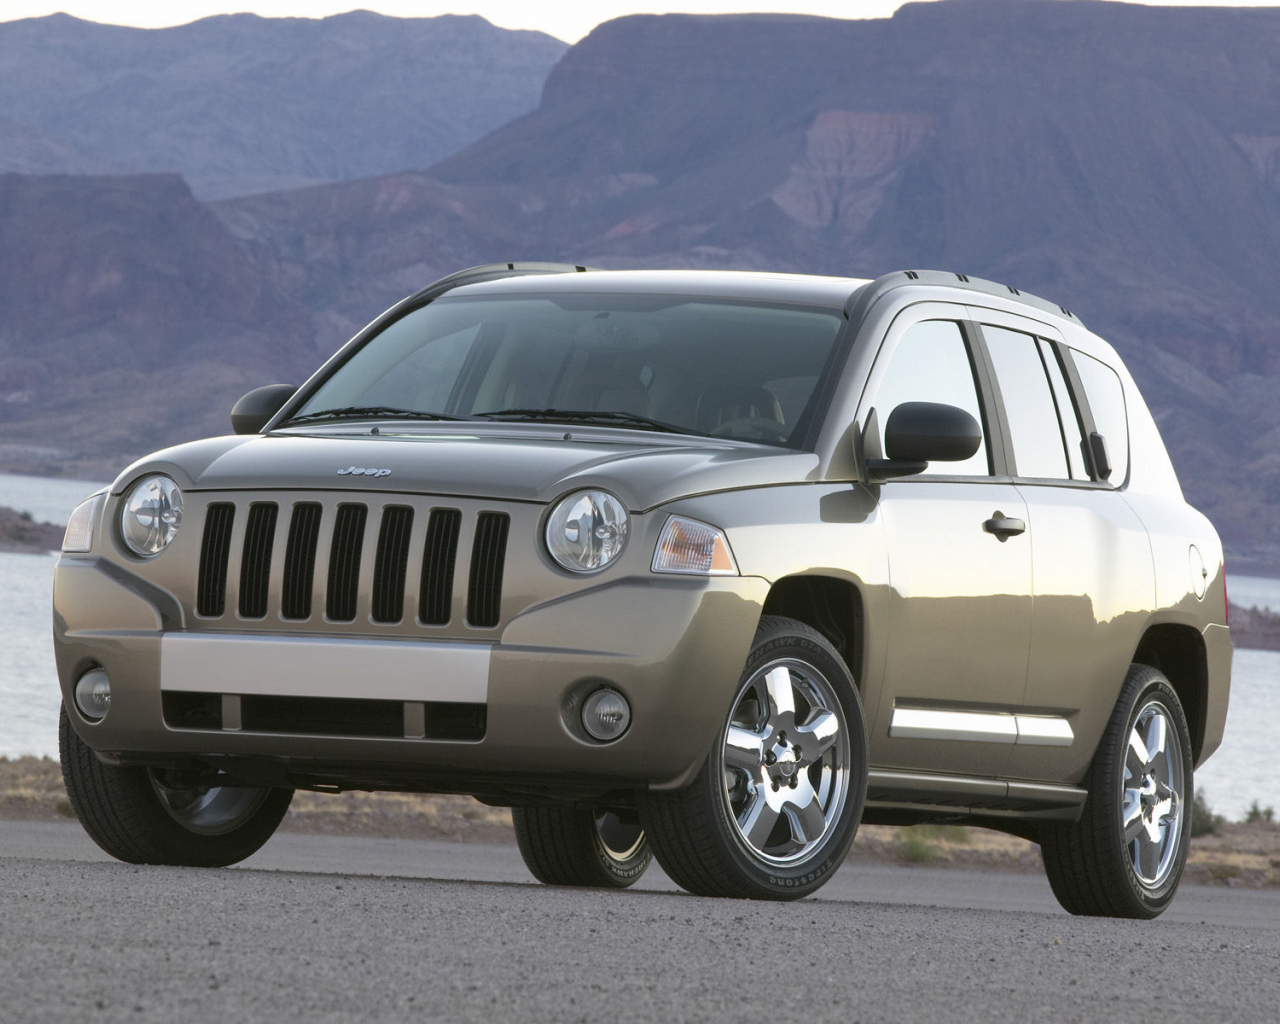 Free Download Jeep Jeep Compass Jeep Compass Desktop Wallpapers Widescreen 1920x1200 For Your Desktop Mobile Tablet Explore 50 Jeep Pictures For Wallpaper Free Jeep Wallpapers Jeep Desktop Wallpaper Jeep